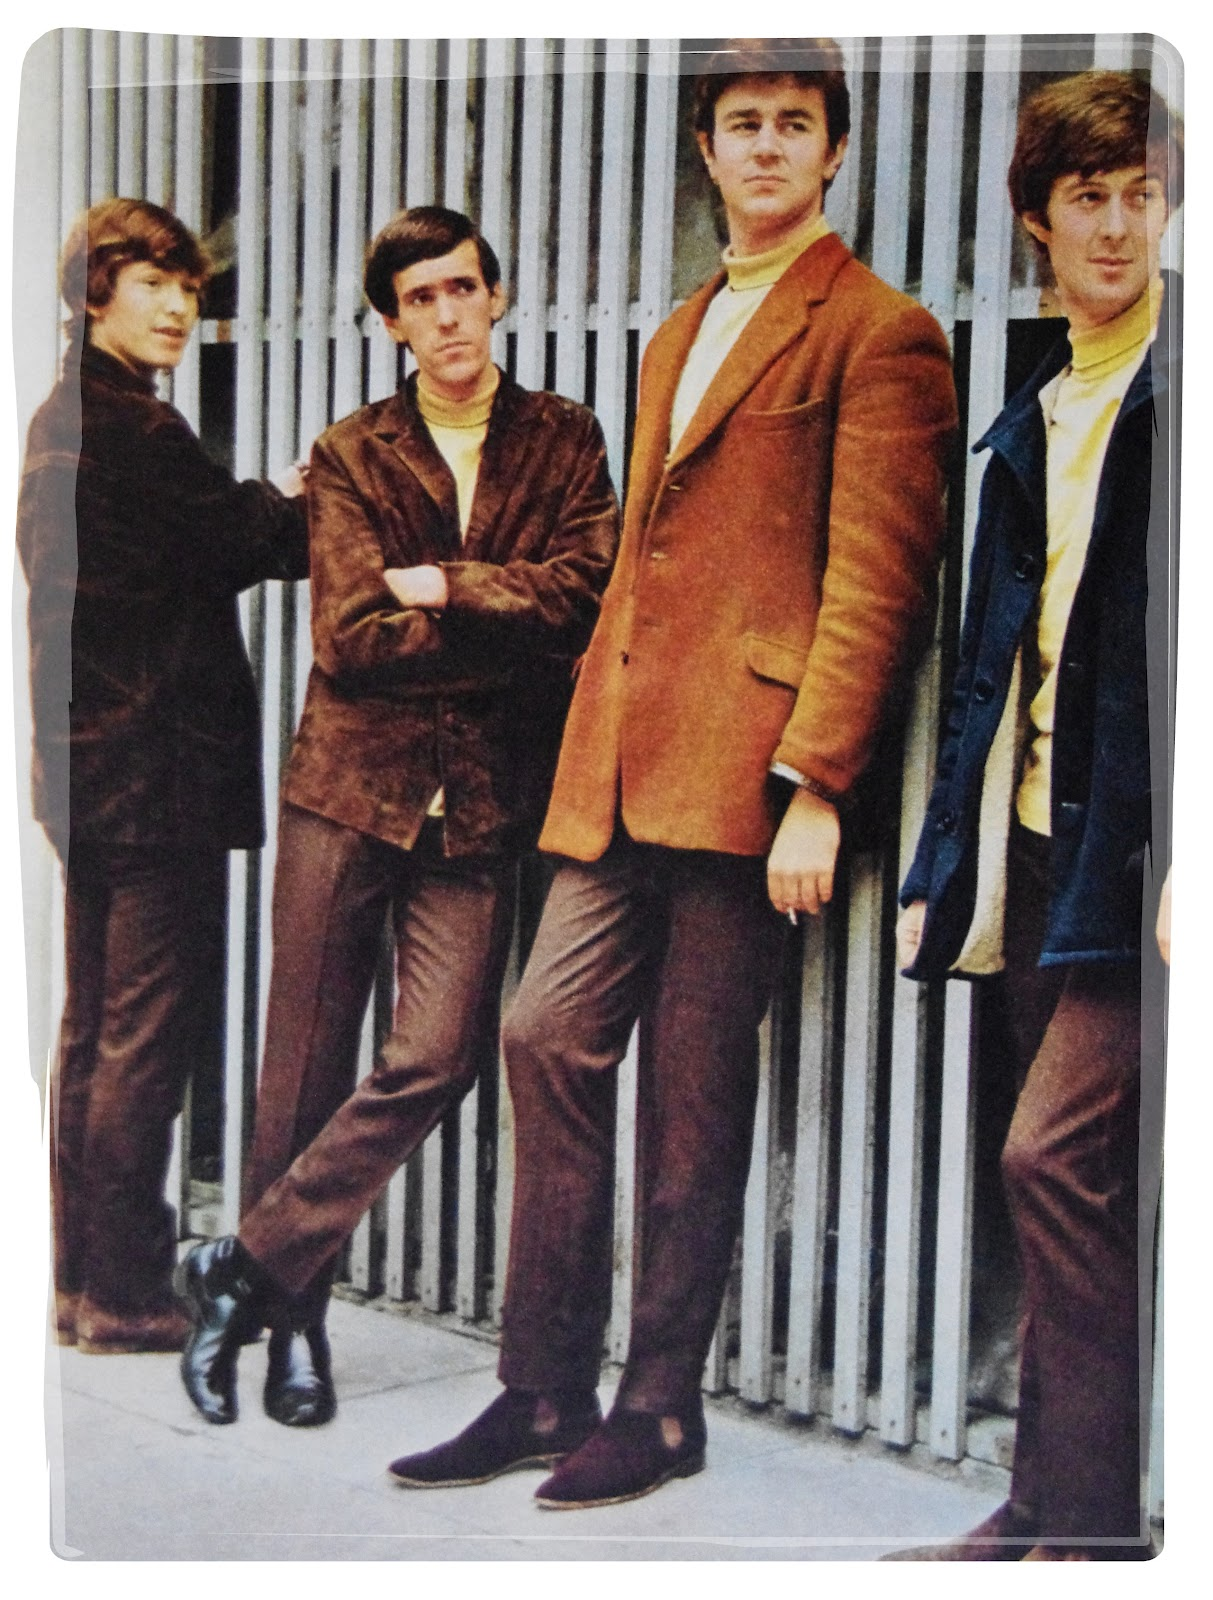 Spencer Davis Group, The - Mister 2nd Class